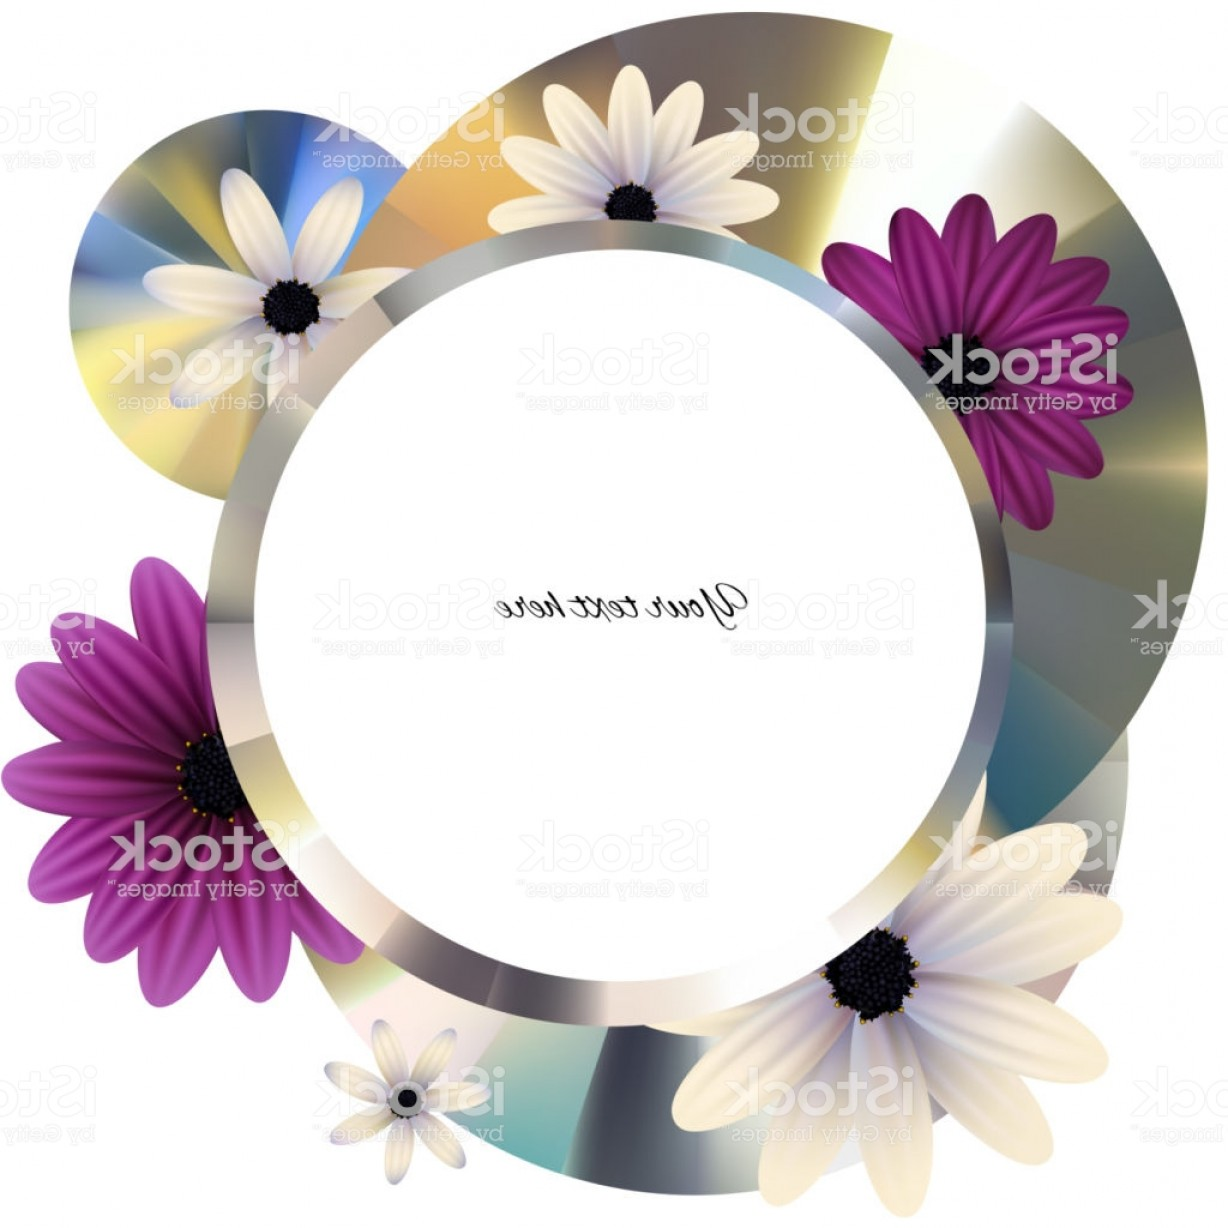 Purple Gerber Daisy Vector Framw: Flowers Gerbera Daisy Purple White Floral Background Frame Border A Circle Disk Metal Gm